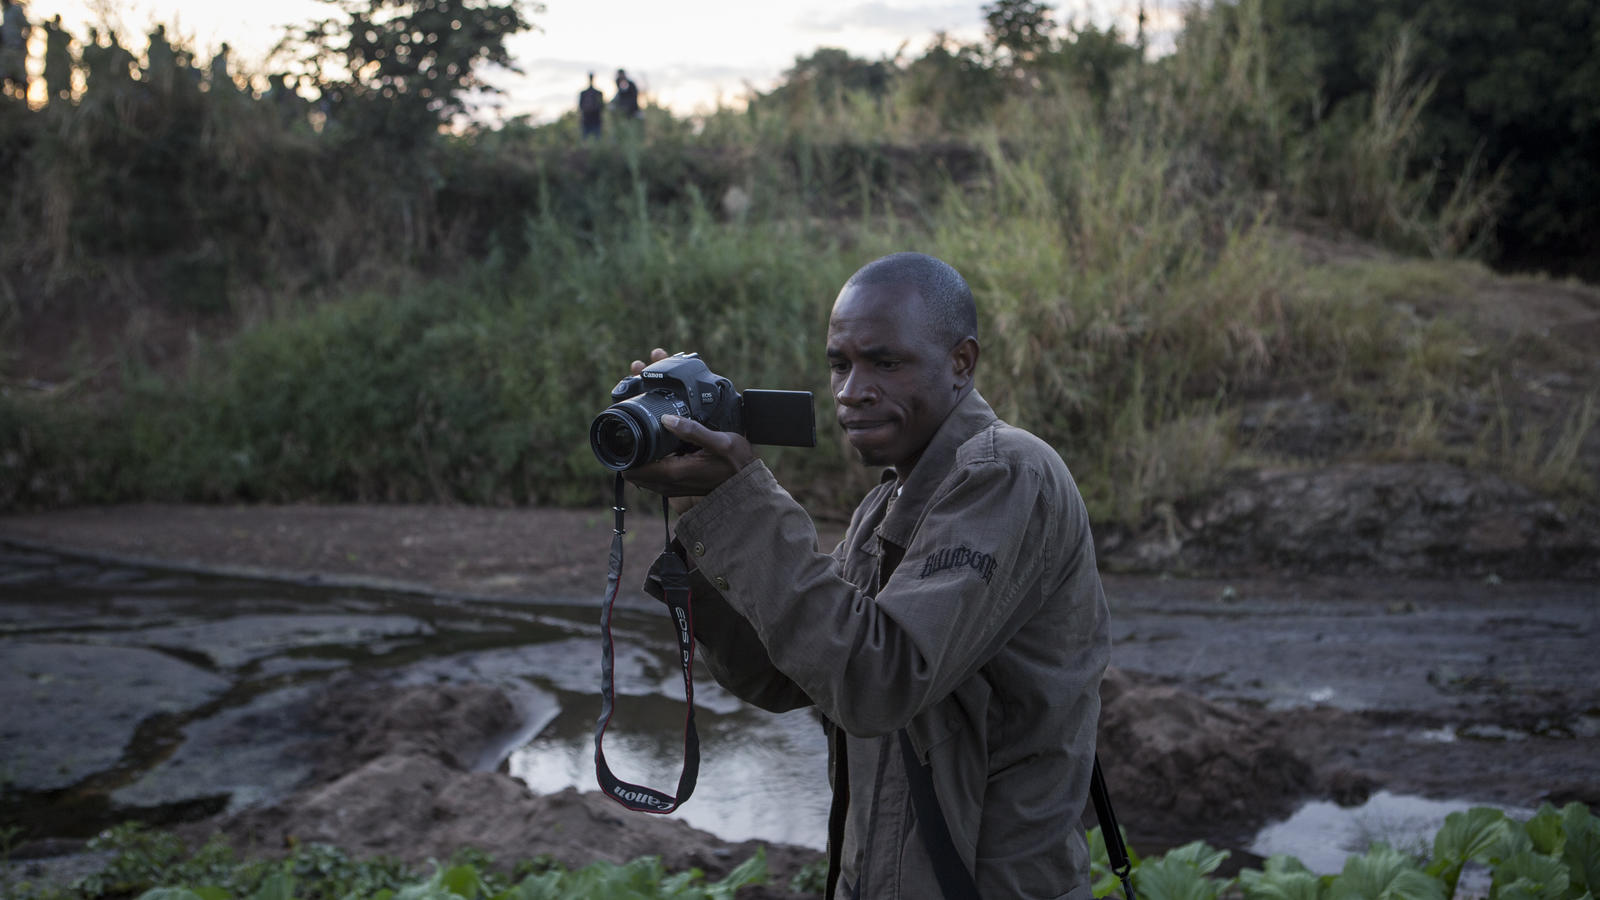 Our Voices from the Field officer Dennis, with a camera.